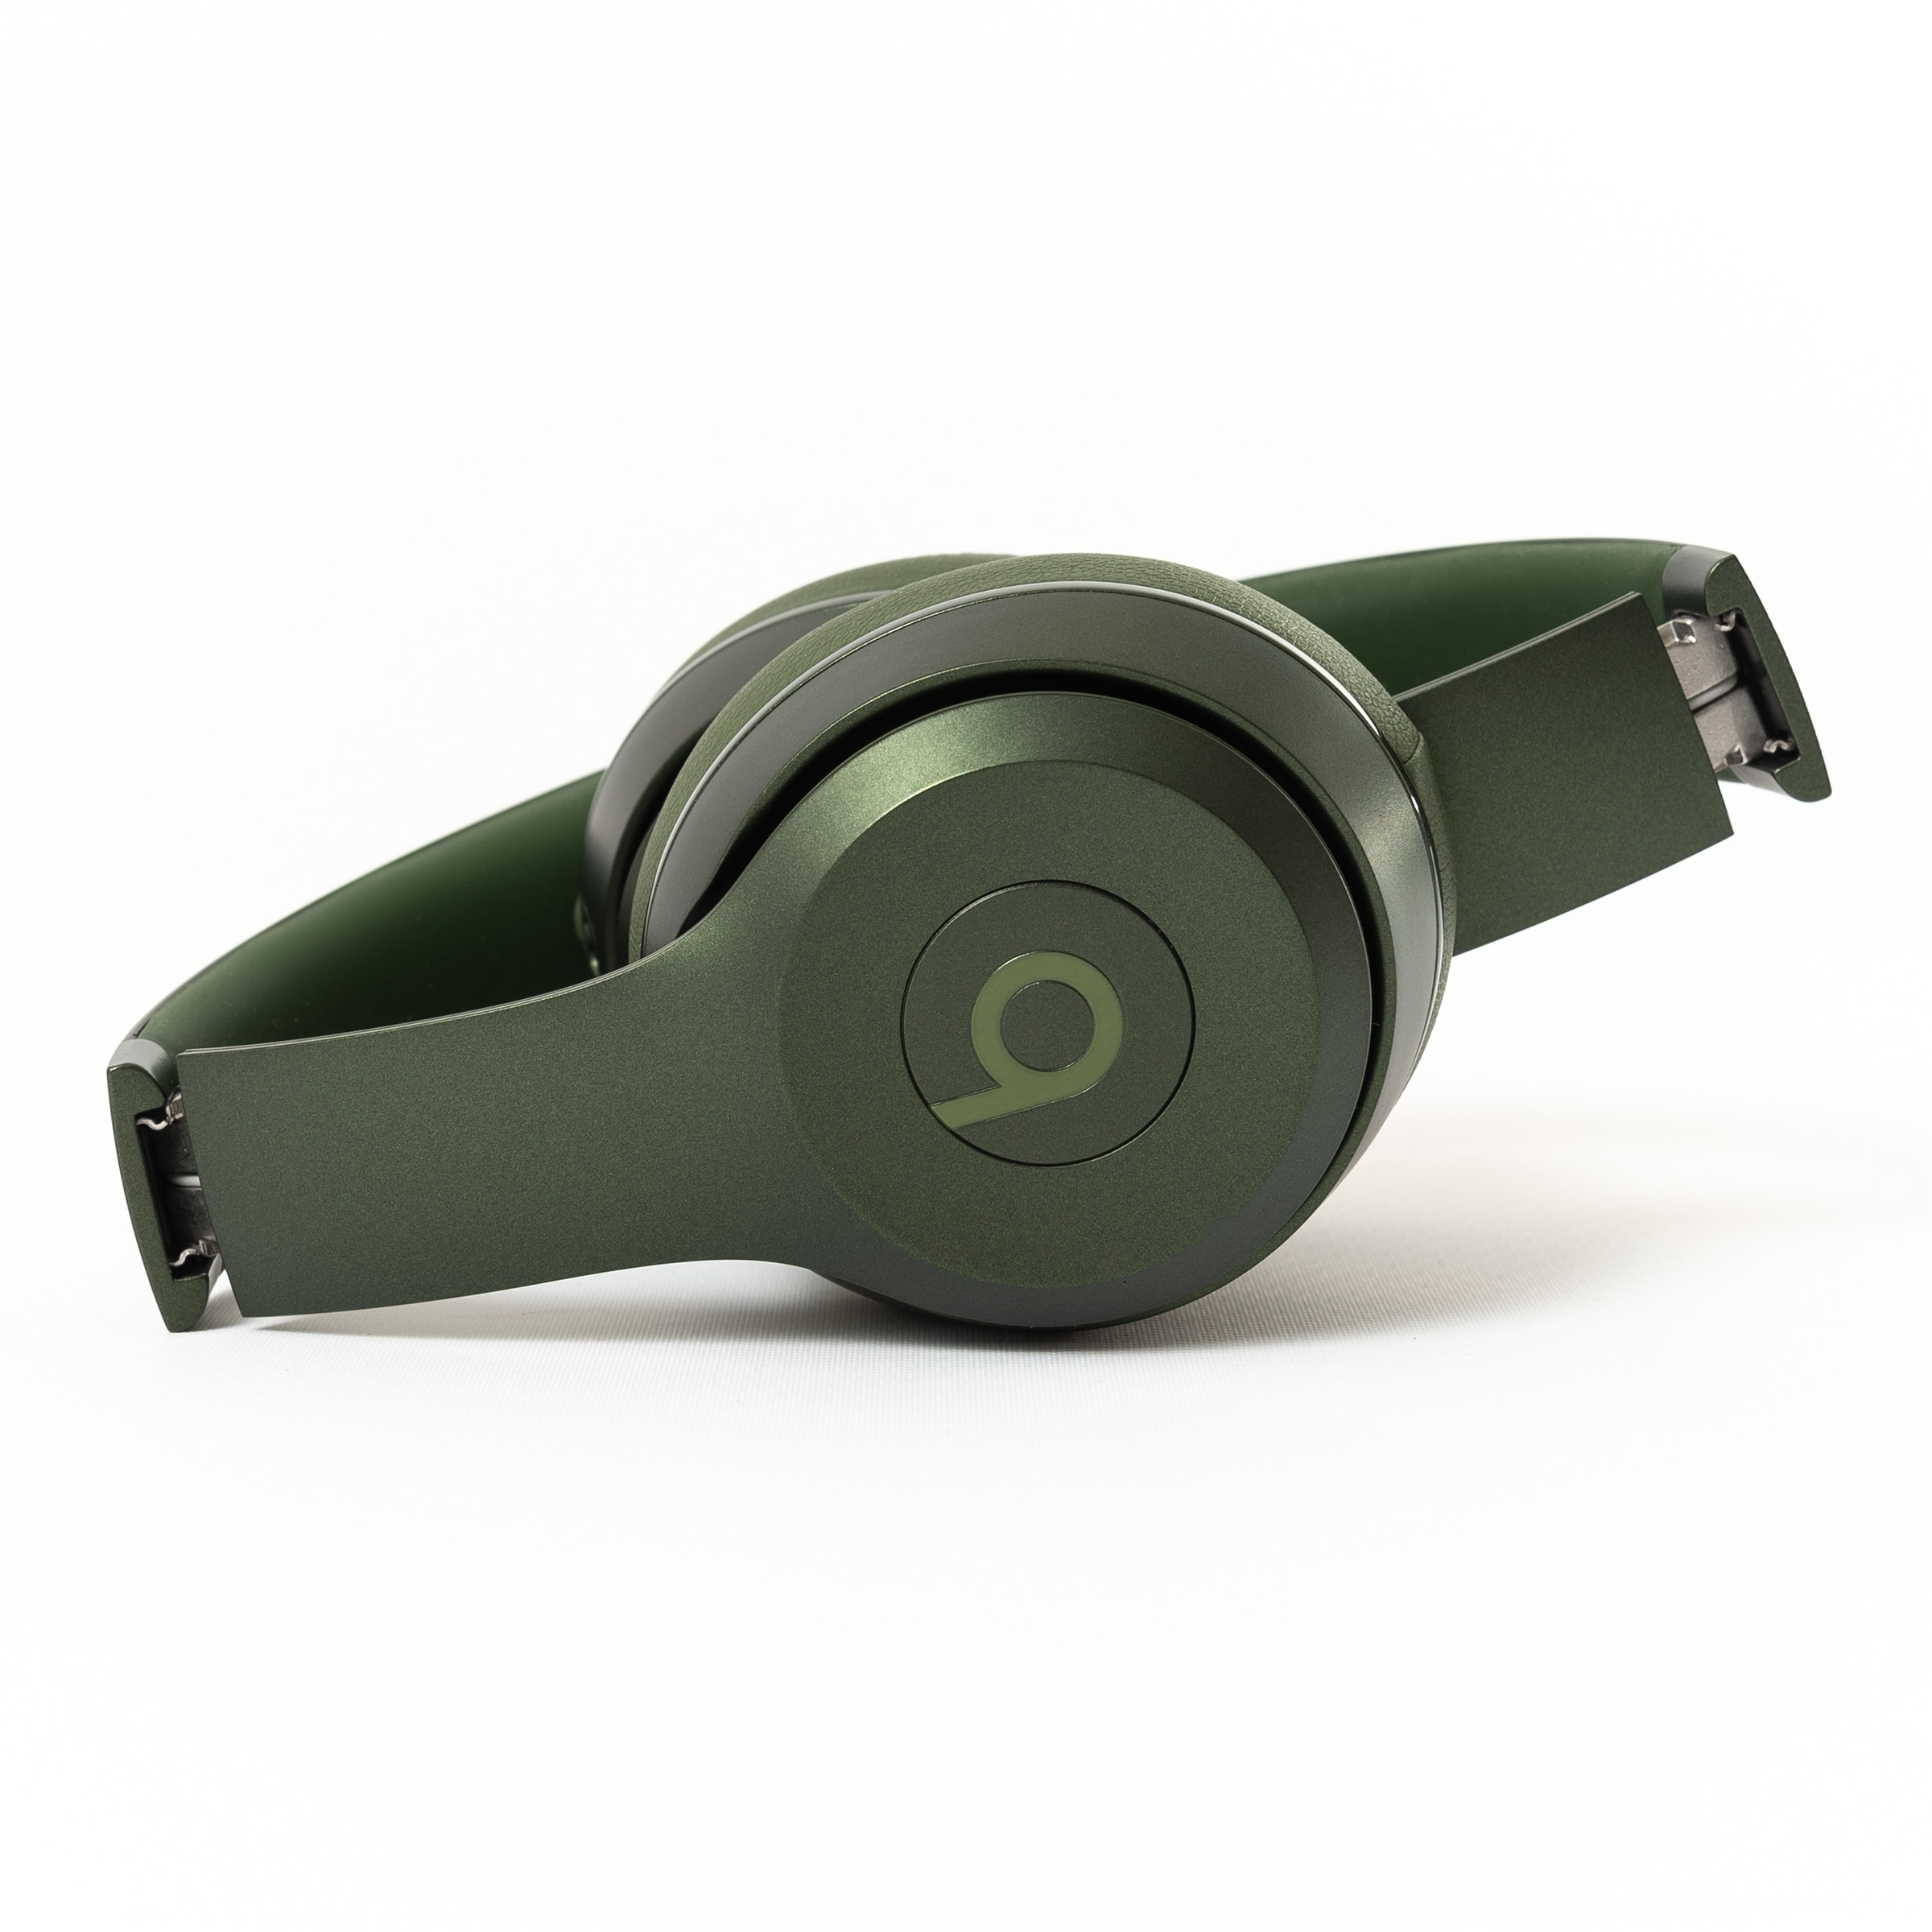 Beats by Dre Solo 2 - Refurbished by Overstock BLue